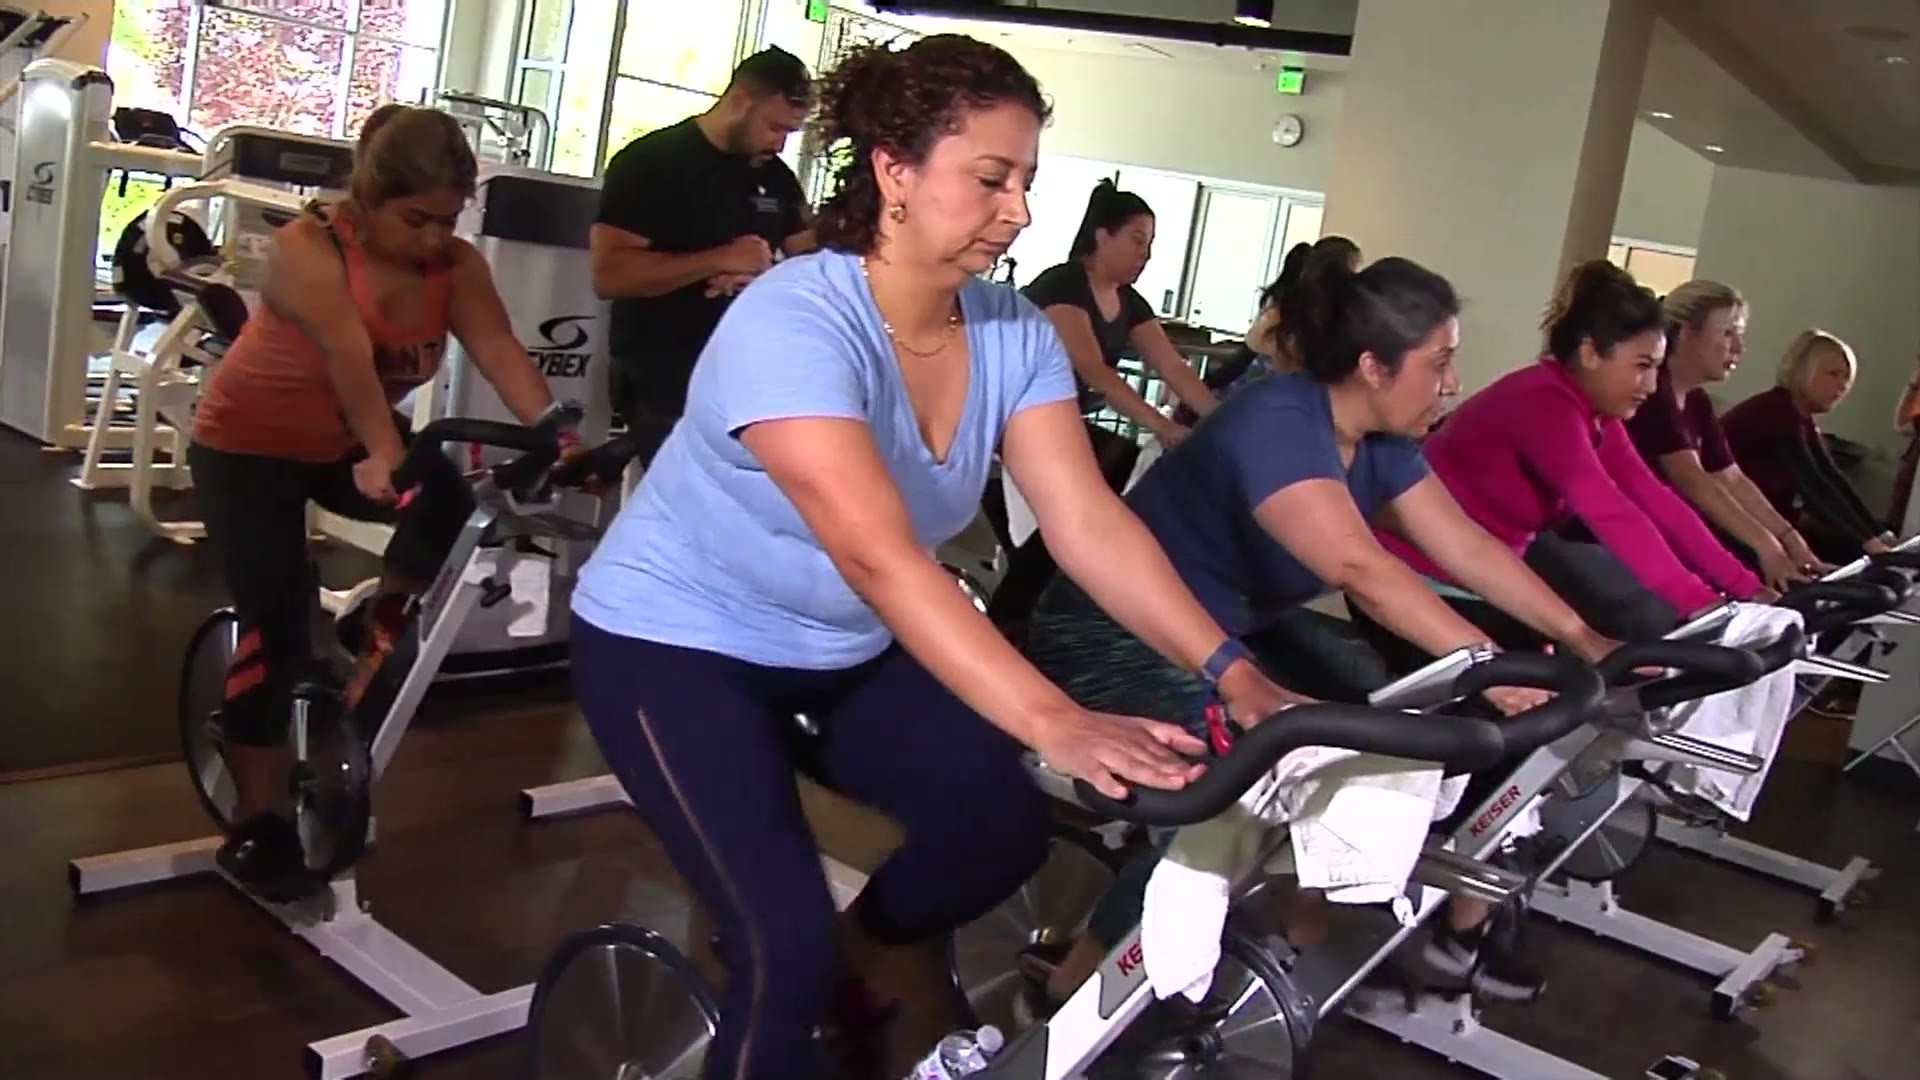 MedWatch Today: In The Gym, Spin Class Benefits